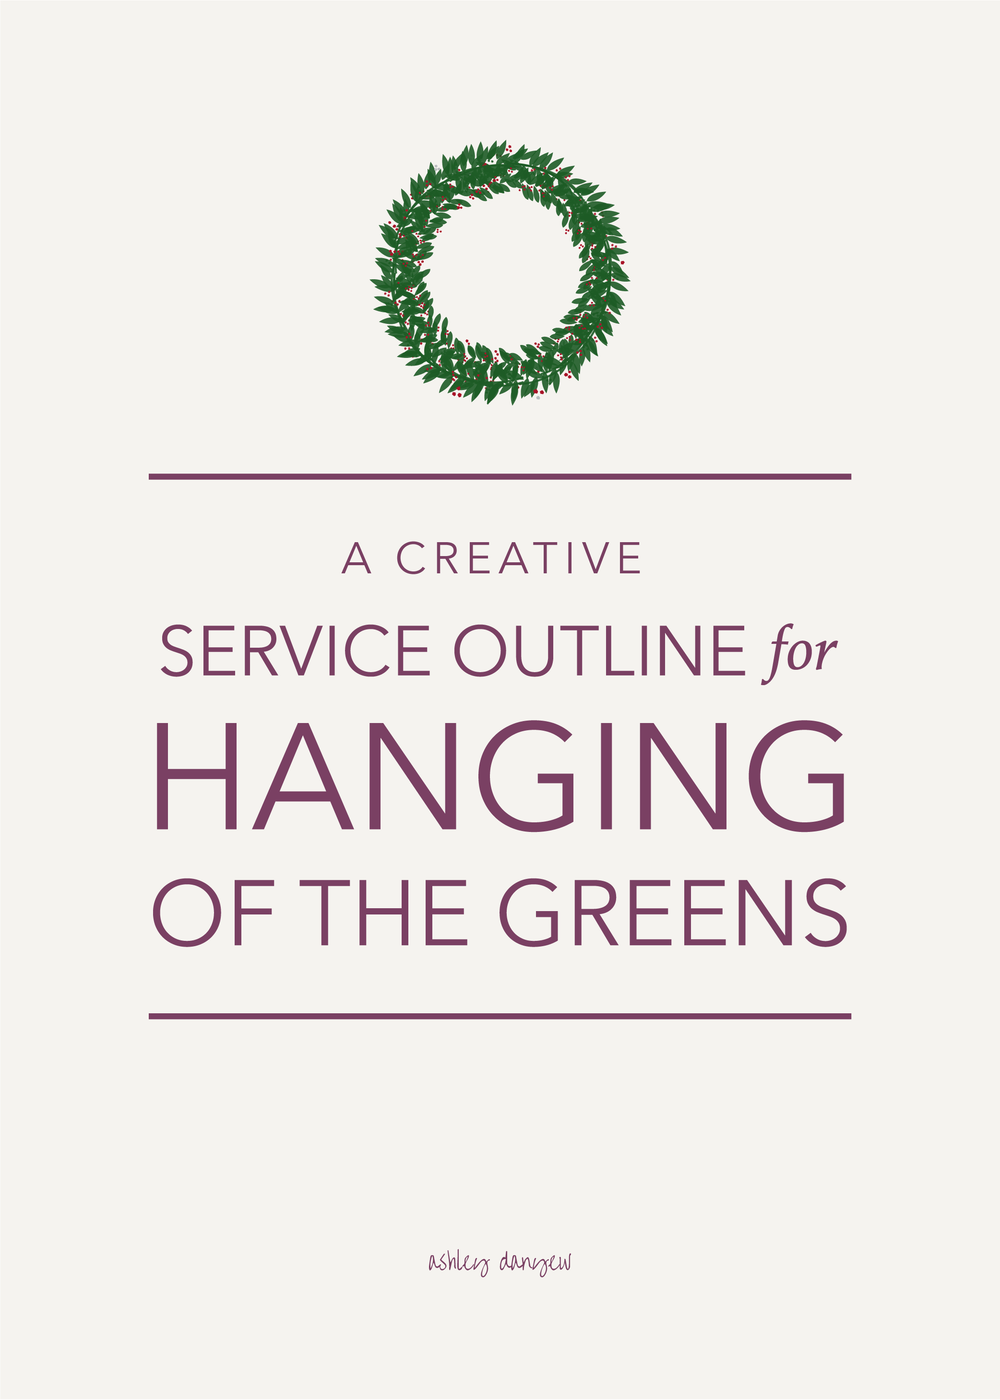 A Creative Service Outline for Hanging of the Greens-57.png